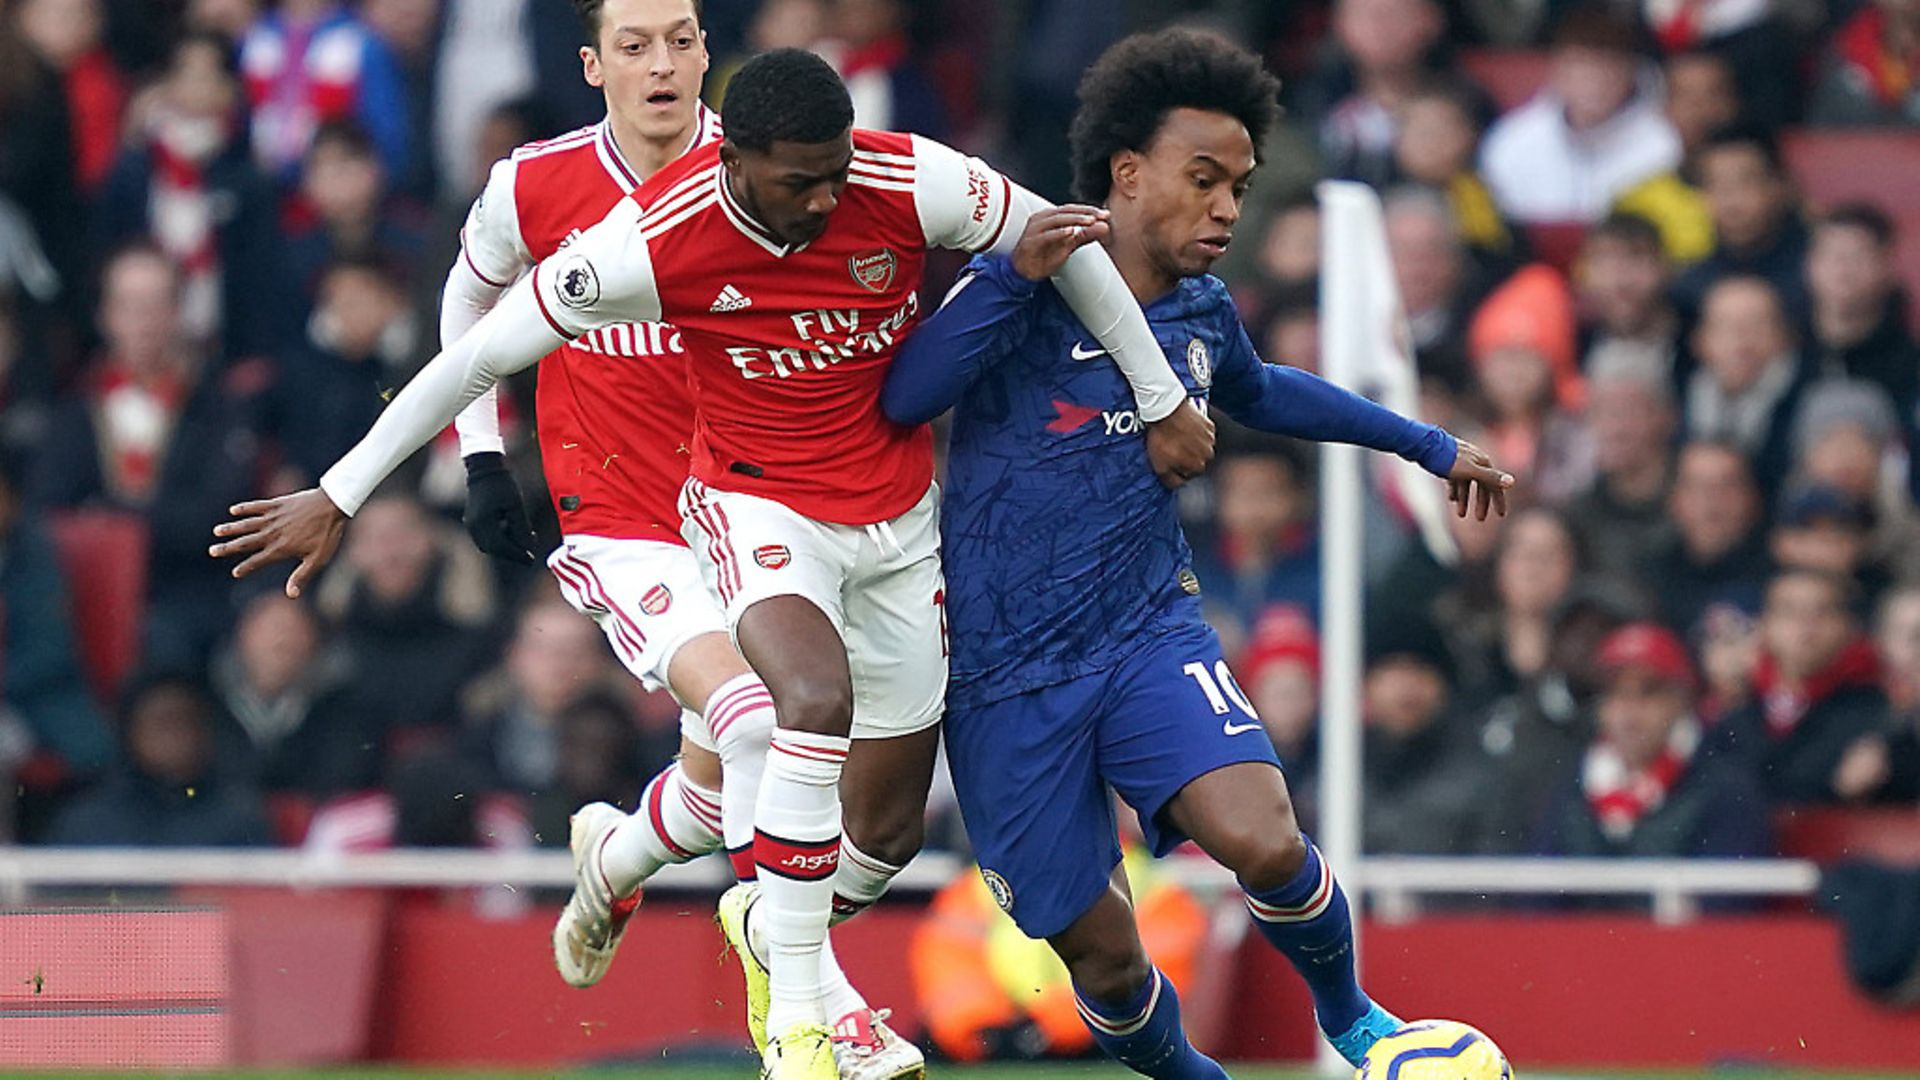 Peter Trudgill says A difference between cultures might explain why misunderstandings can occur in our multi-ethnic English Premier League. Picture: PA - Credit: PA Wire/PA Images